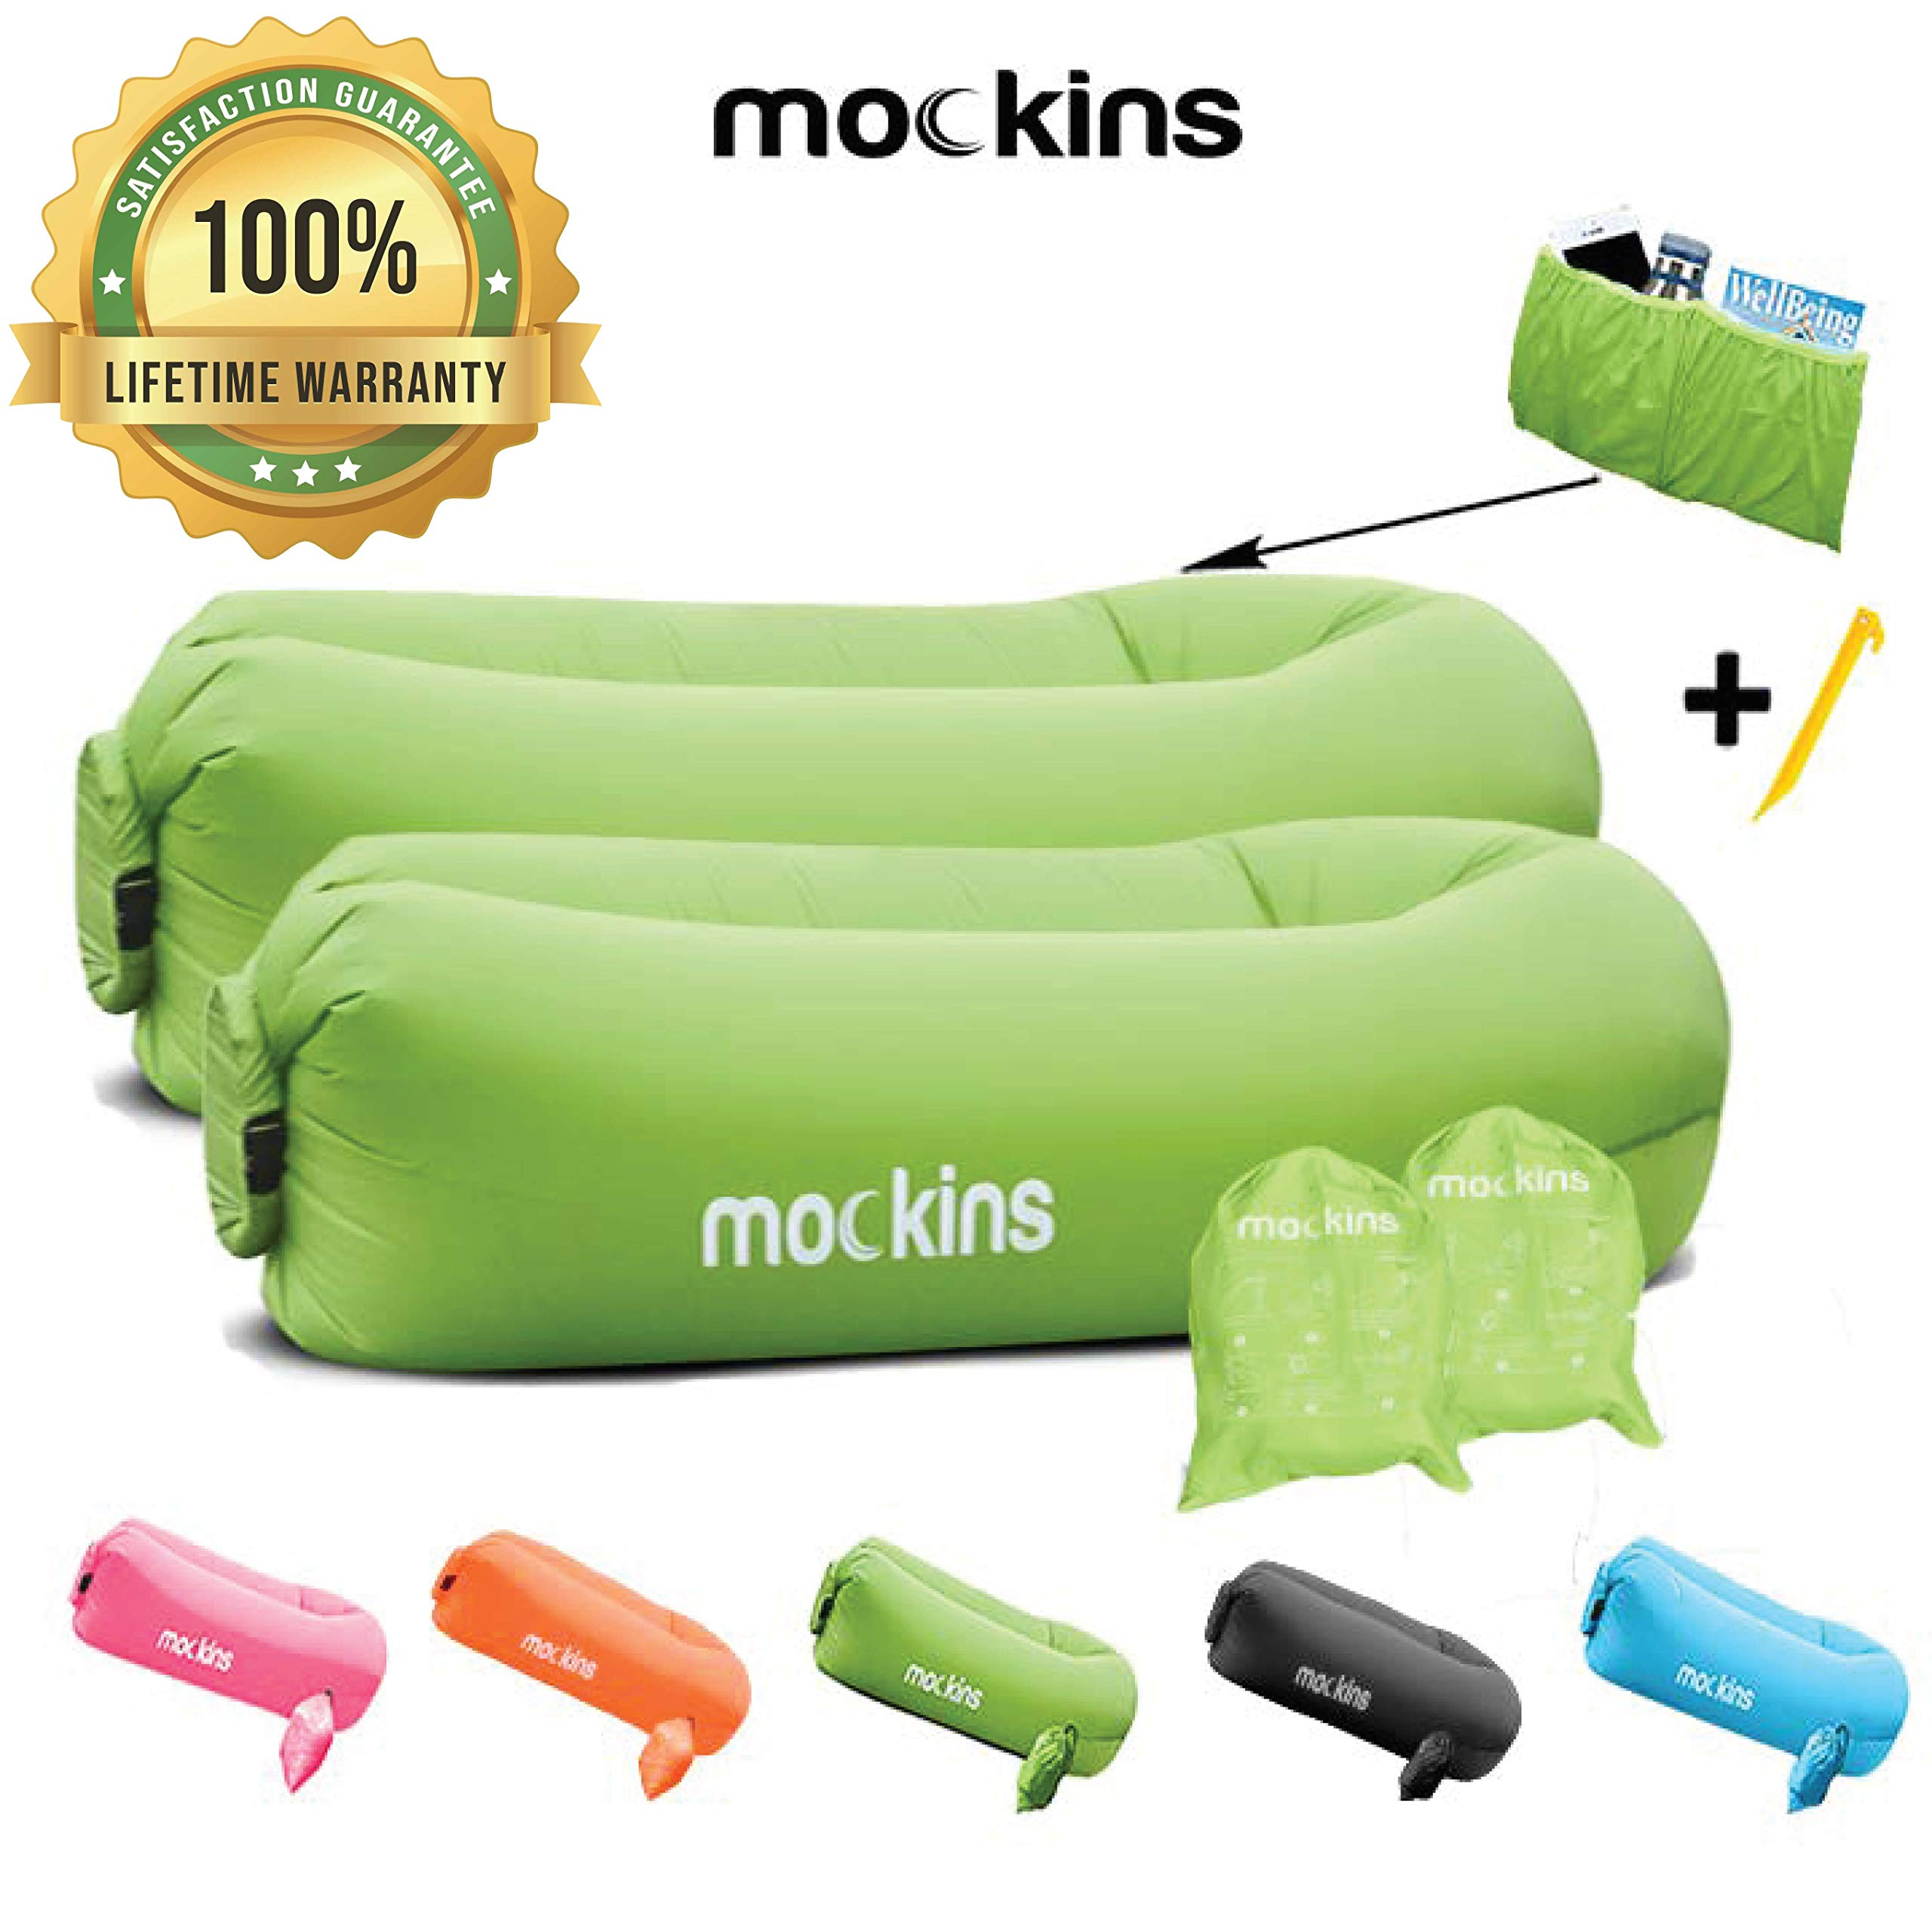 Mockins 2 Pack Inflatable Lounger Air Sofa Perfect for Beach Chair Camping Chairs or Portable Hammock and Includes Travel Bag Pouch and Pockets | Easy to Use Camping Accessories -Green Color by Mockins